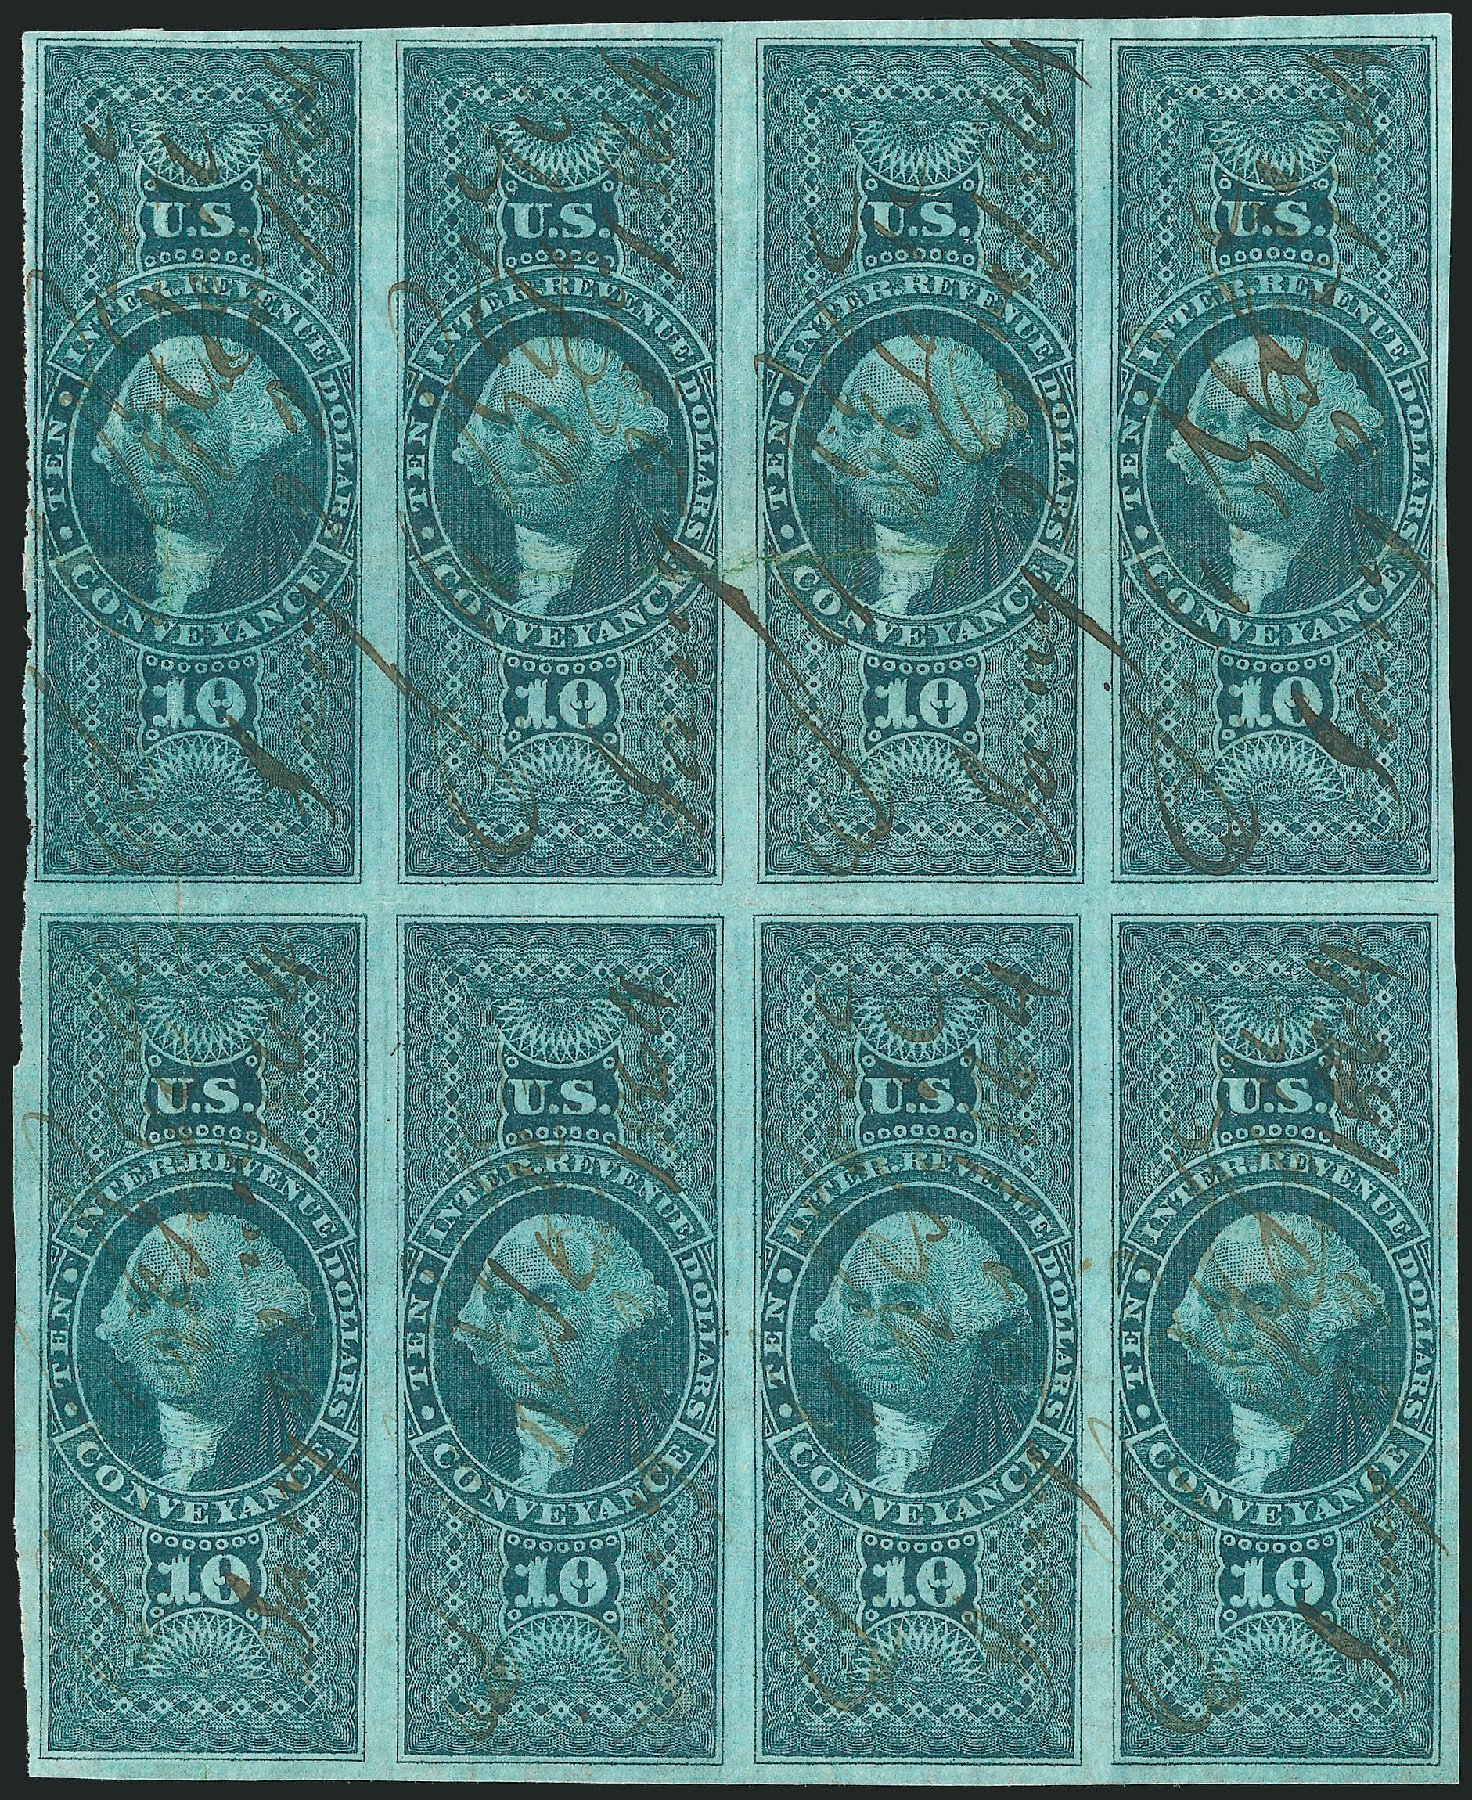 US Stamp Price Scott Catalogue # R94: US$10.00 1862 Revenue Conveyance. Robert Siegel Auction Galleries, Dec 2014, Sale 1089, Lot 375